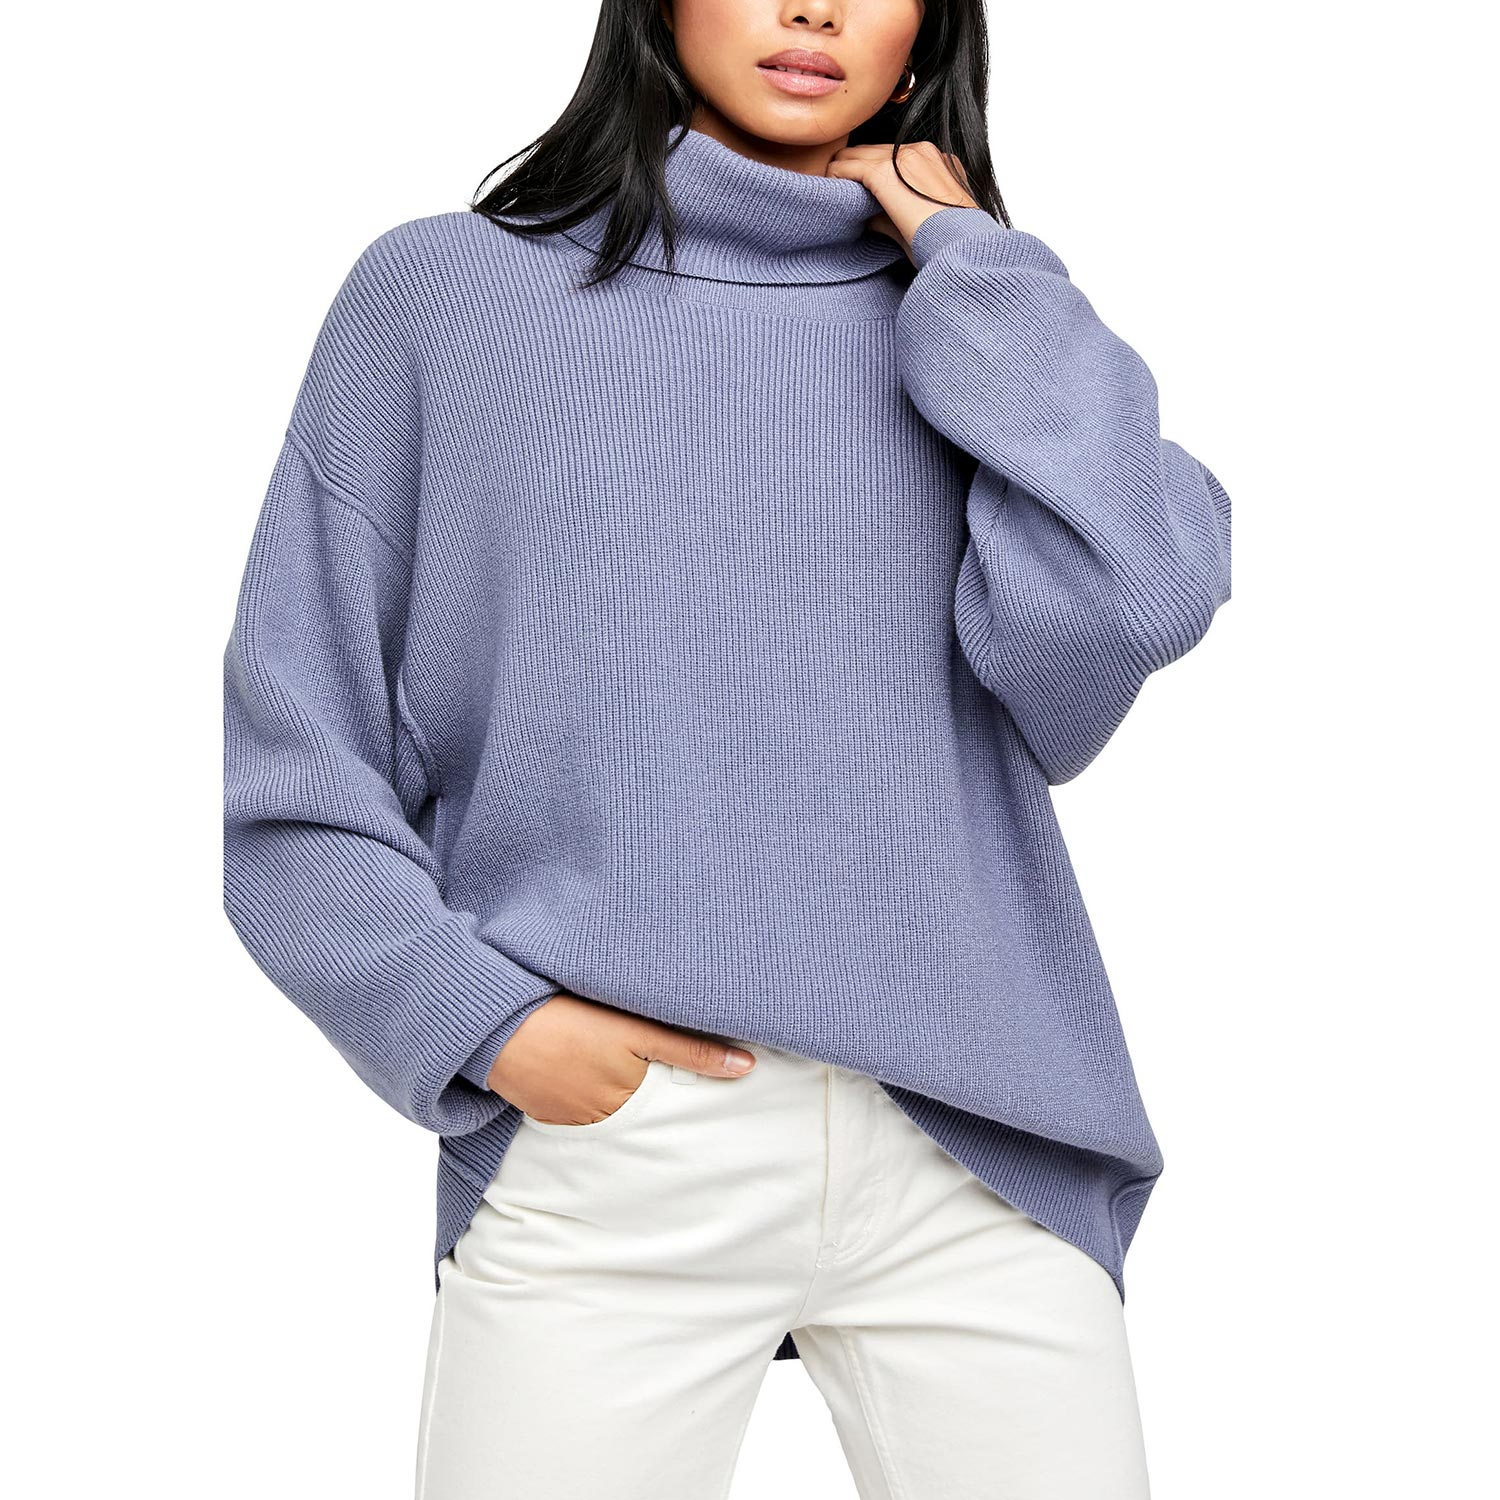 Softly Structured Knit Tunic FREE PEOPLE